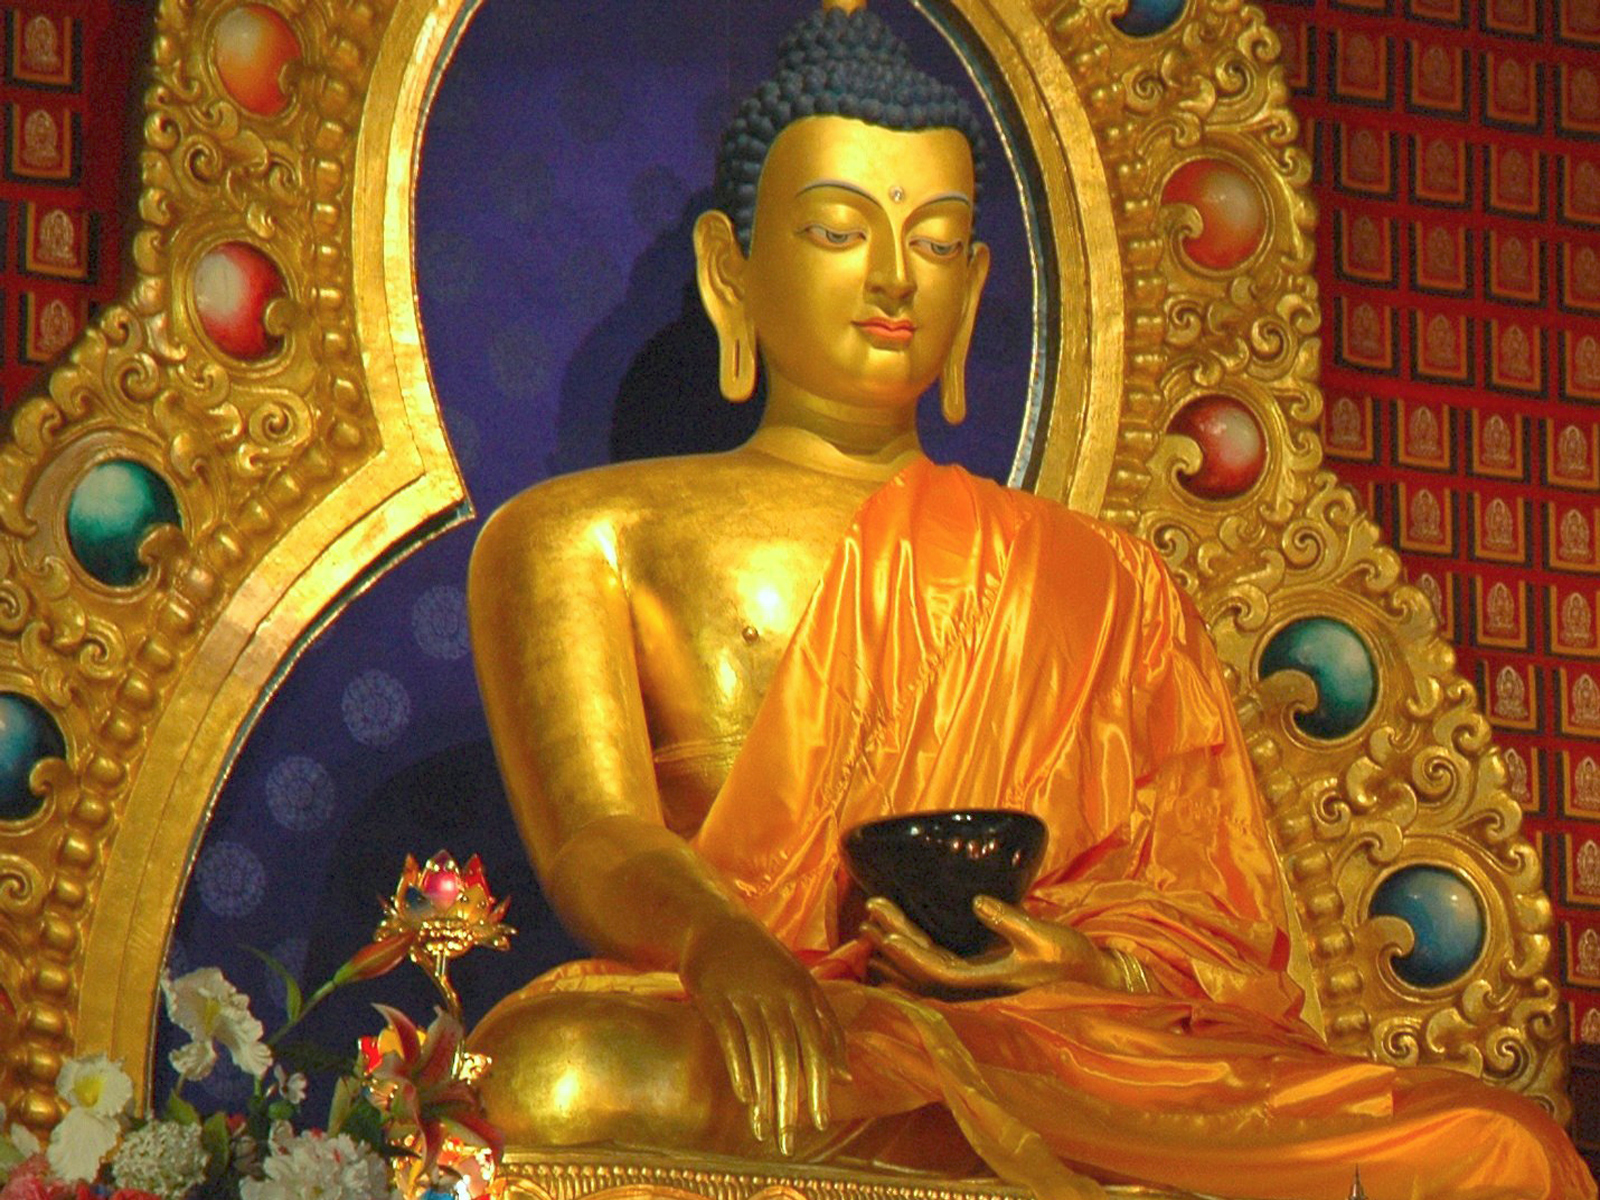 page size 1600x1200 desktop wallpaper of buddha purnima day 1600x1200